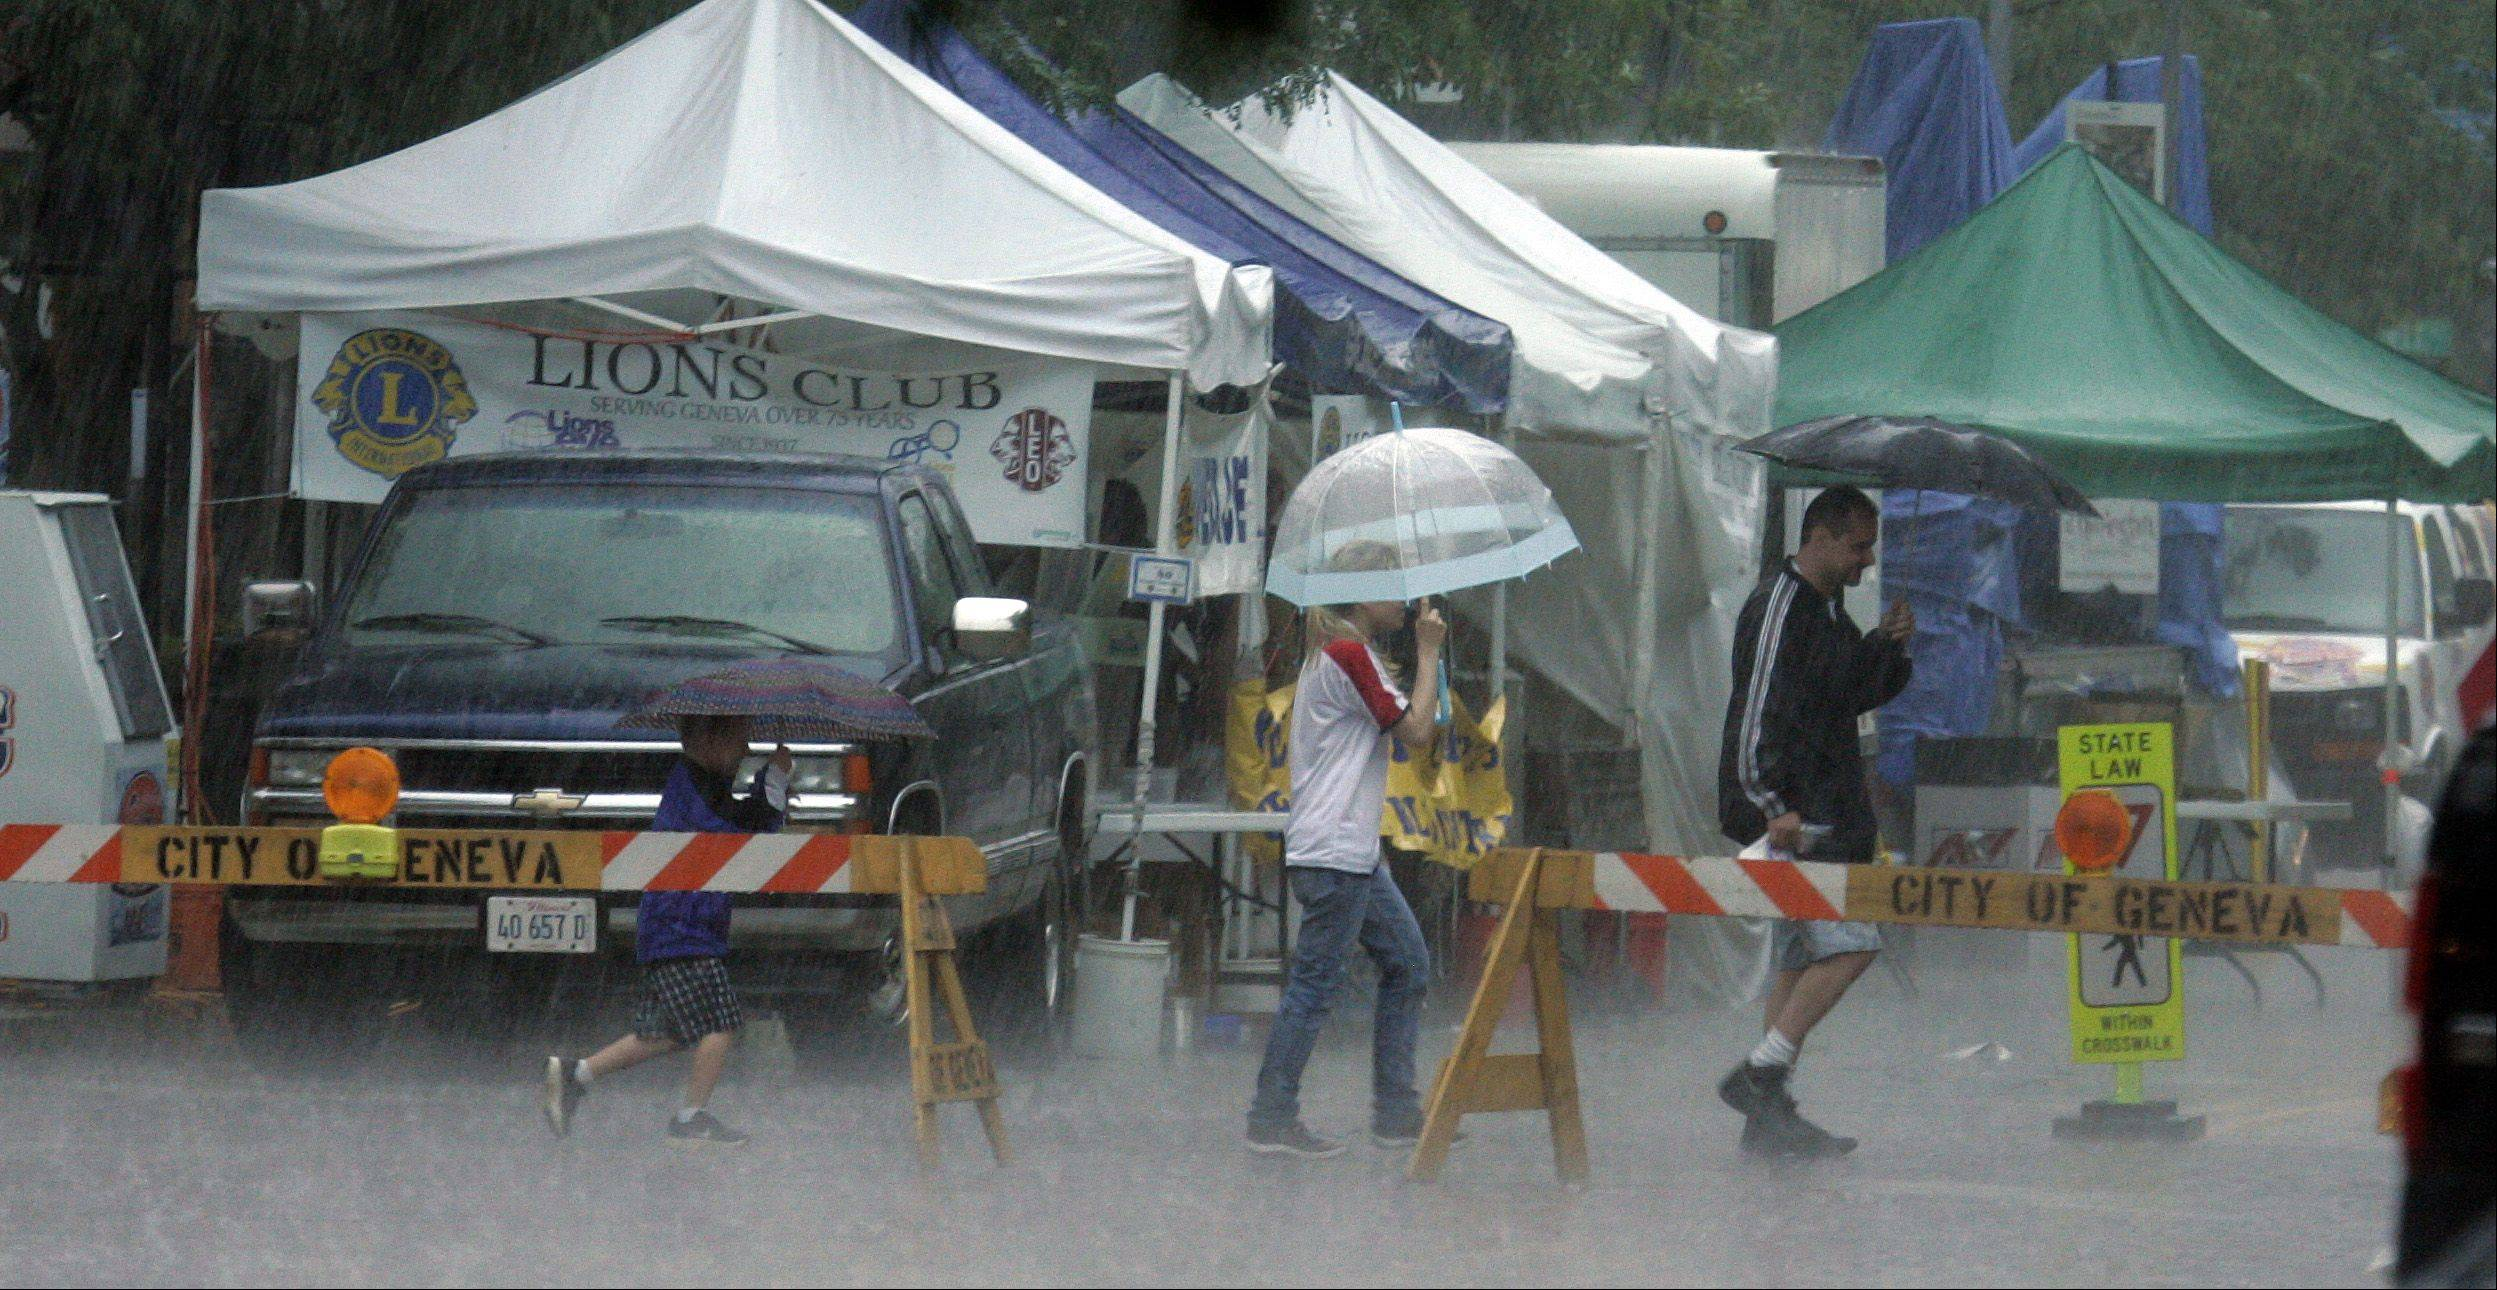 Swedish Days in Geneva was temporarily shut down Friday afternoon due to strong thunderstorms.